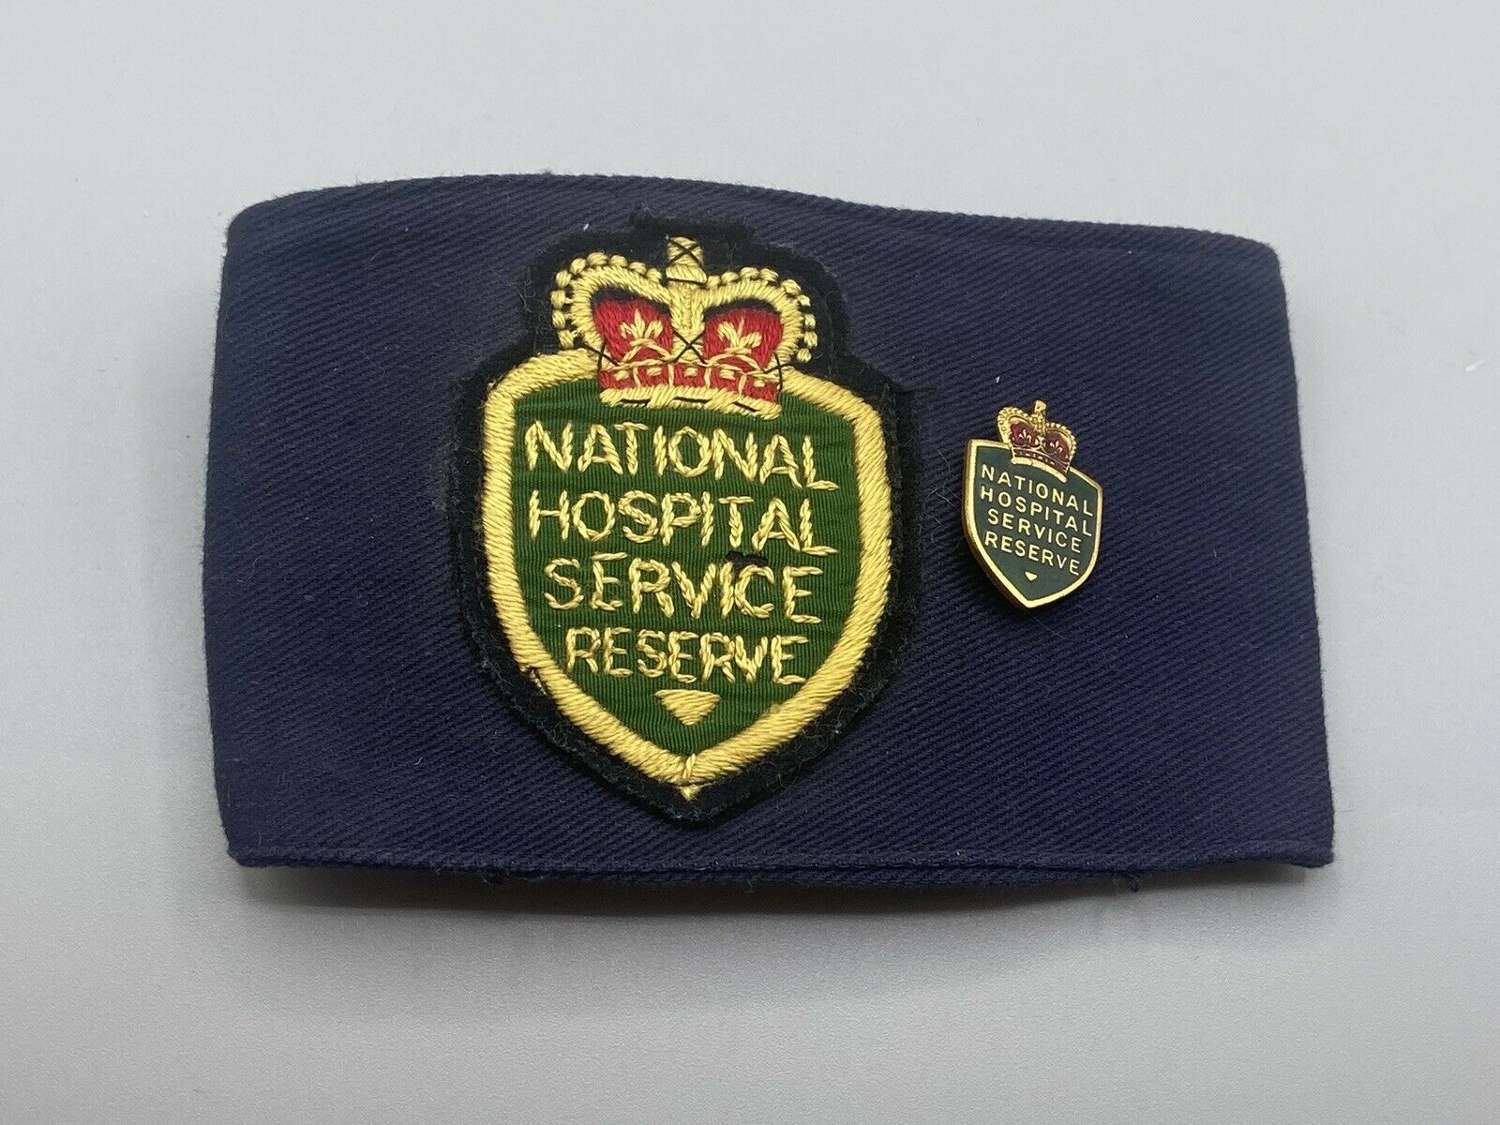 WW2 To Early Post National Hospital Service Reserve Armband And Badge